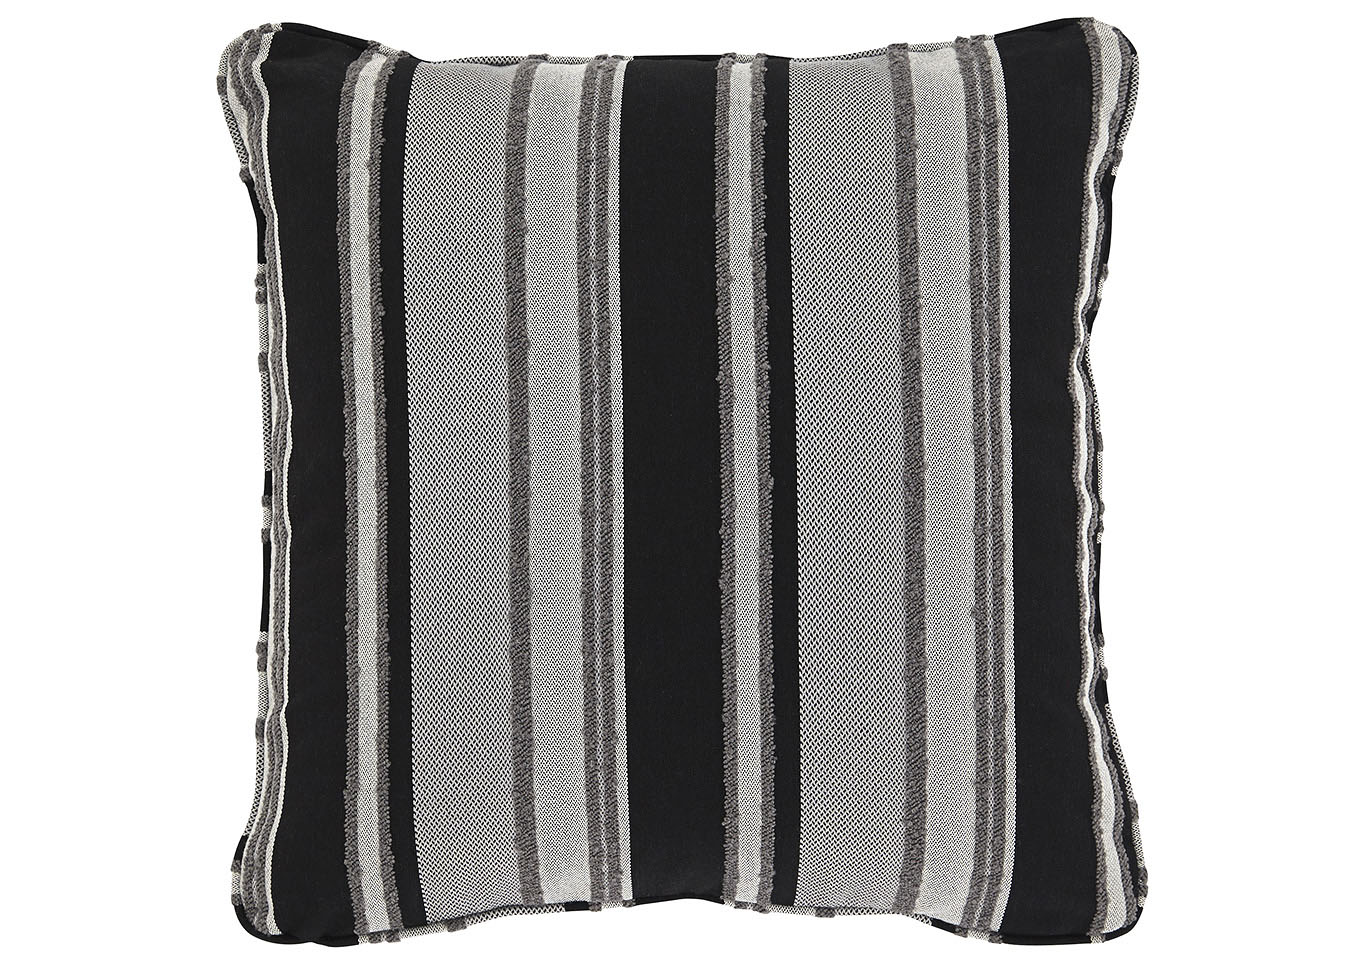 Samuel Black/Tan Pillow (Set of 4),Signature Design By Ashley